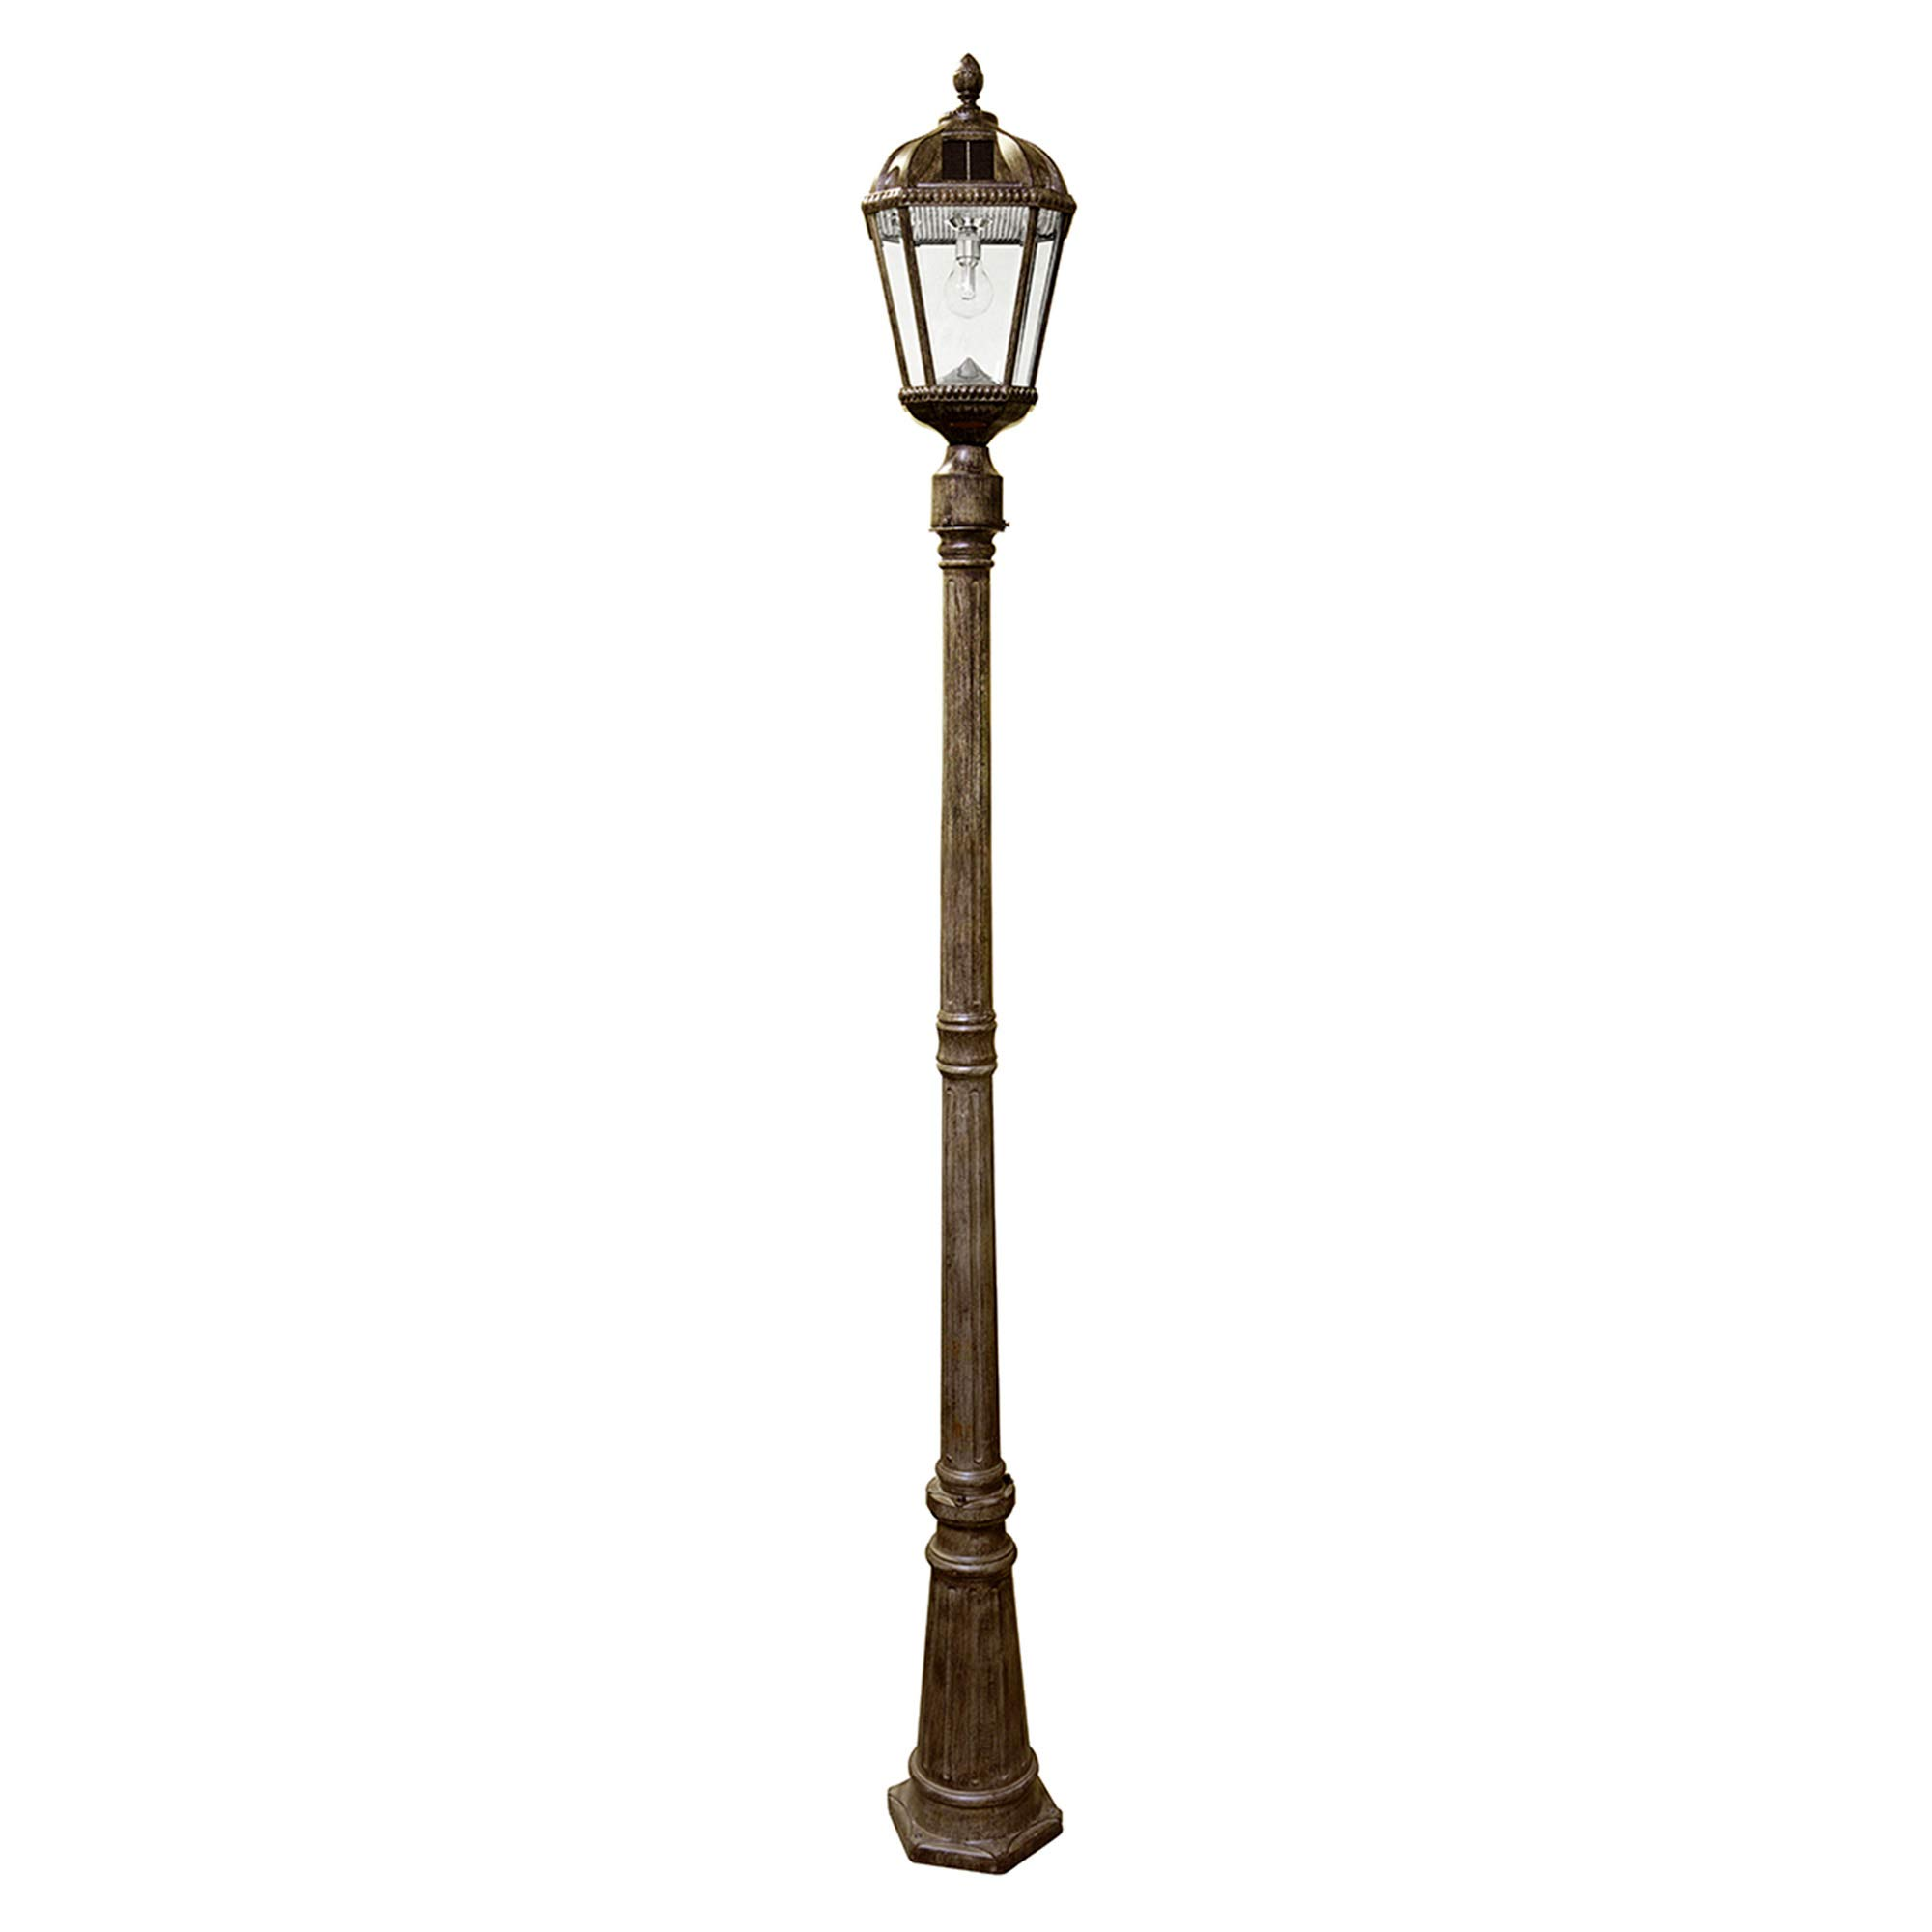 Gama Sonic GS-98B-S-WB Royal Bulb Lamp Post Outdoor Solar Light Fixture and Pole